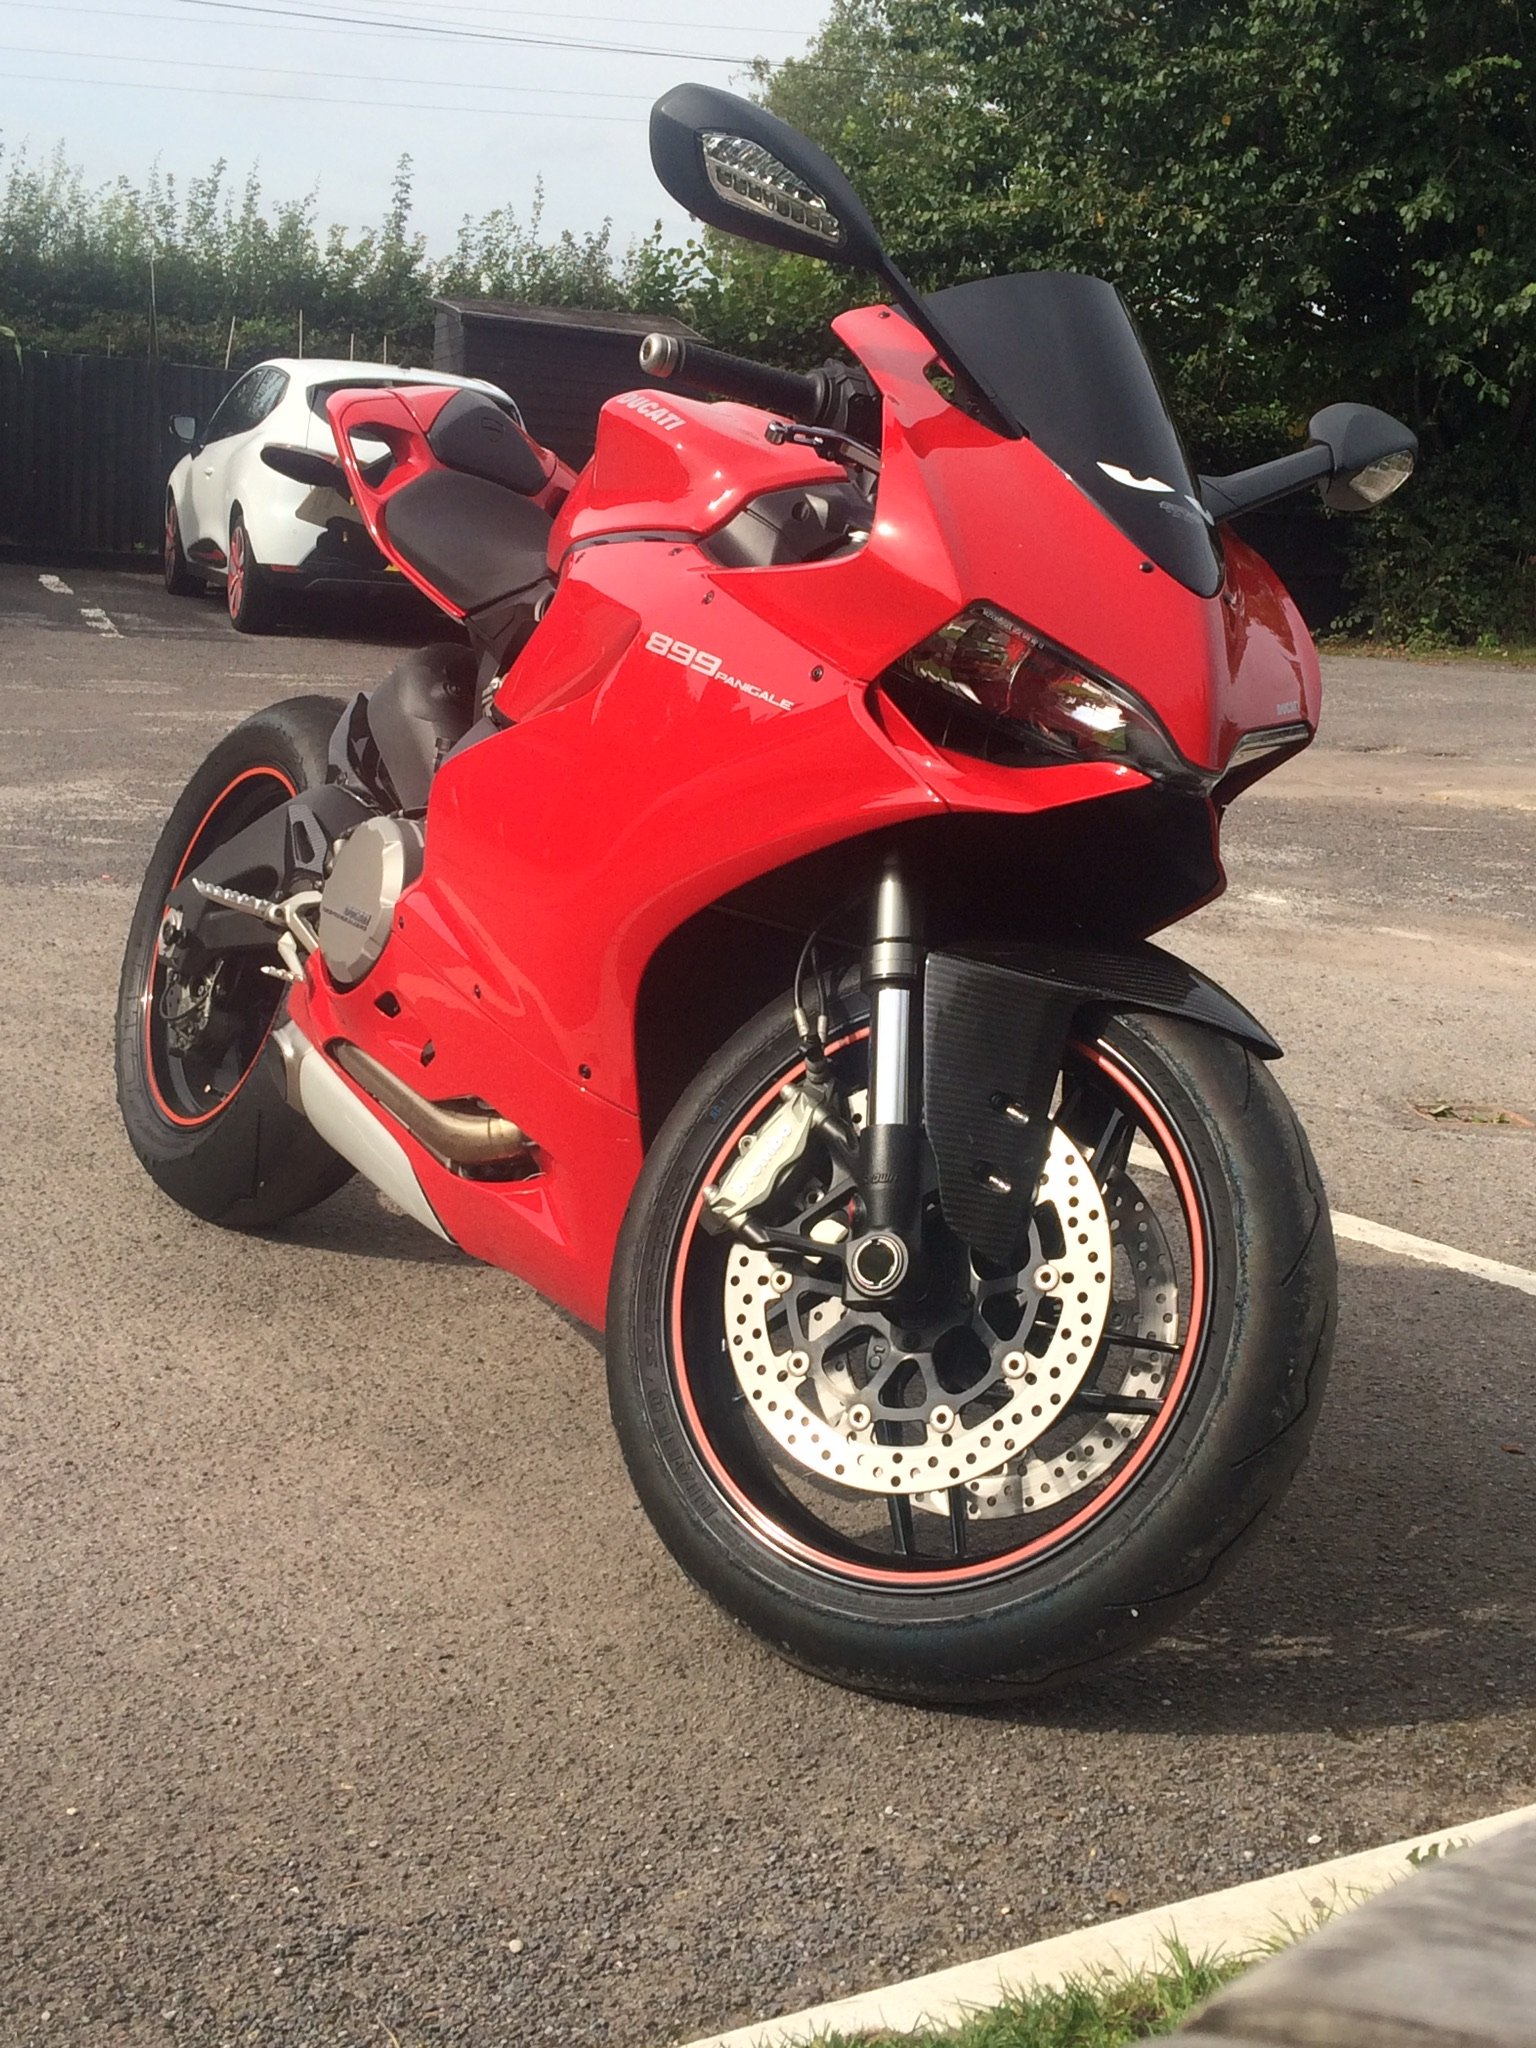 Dawg – Ducati 899 Panigale